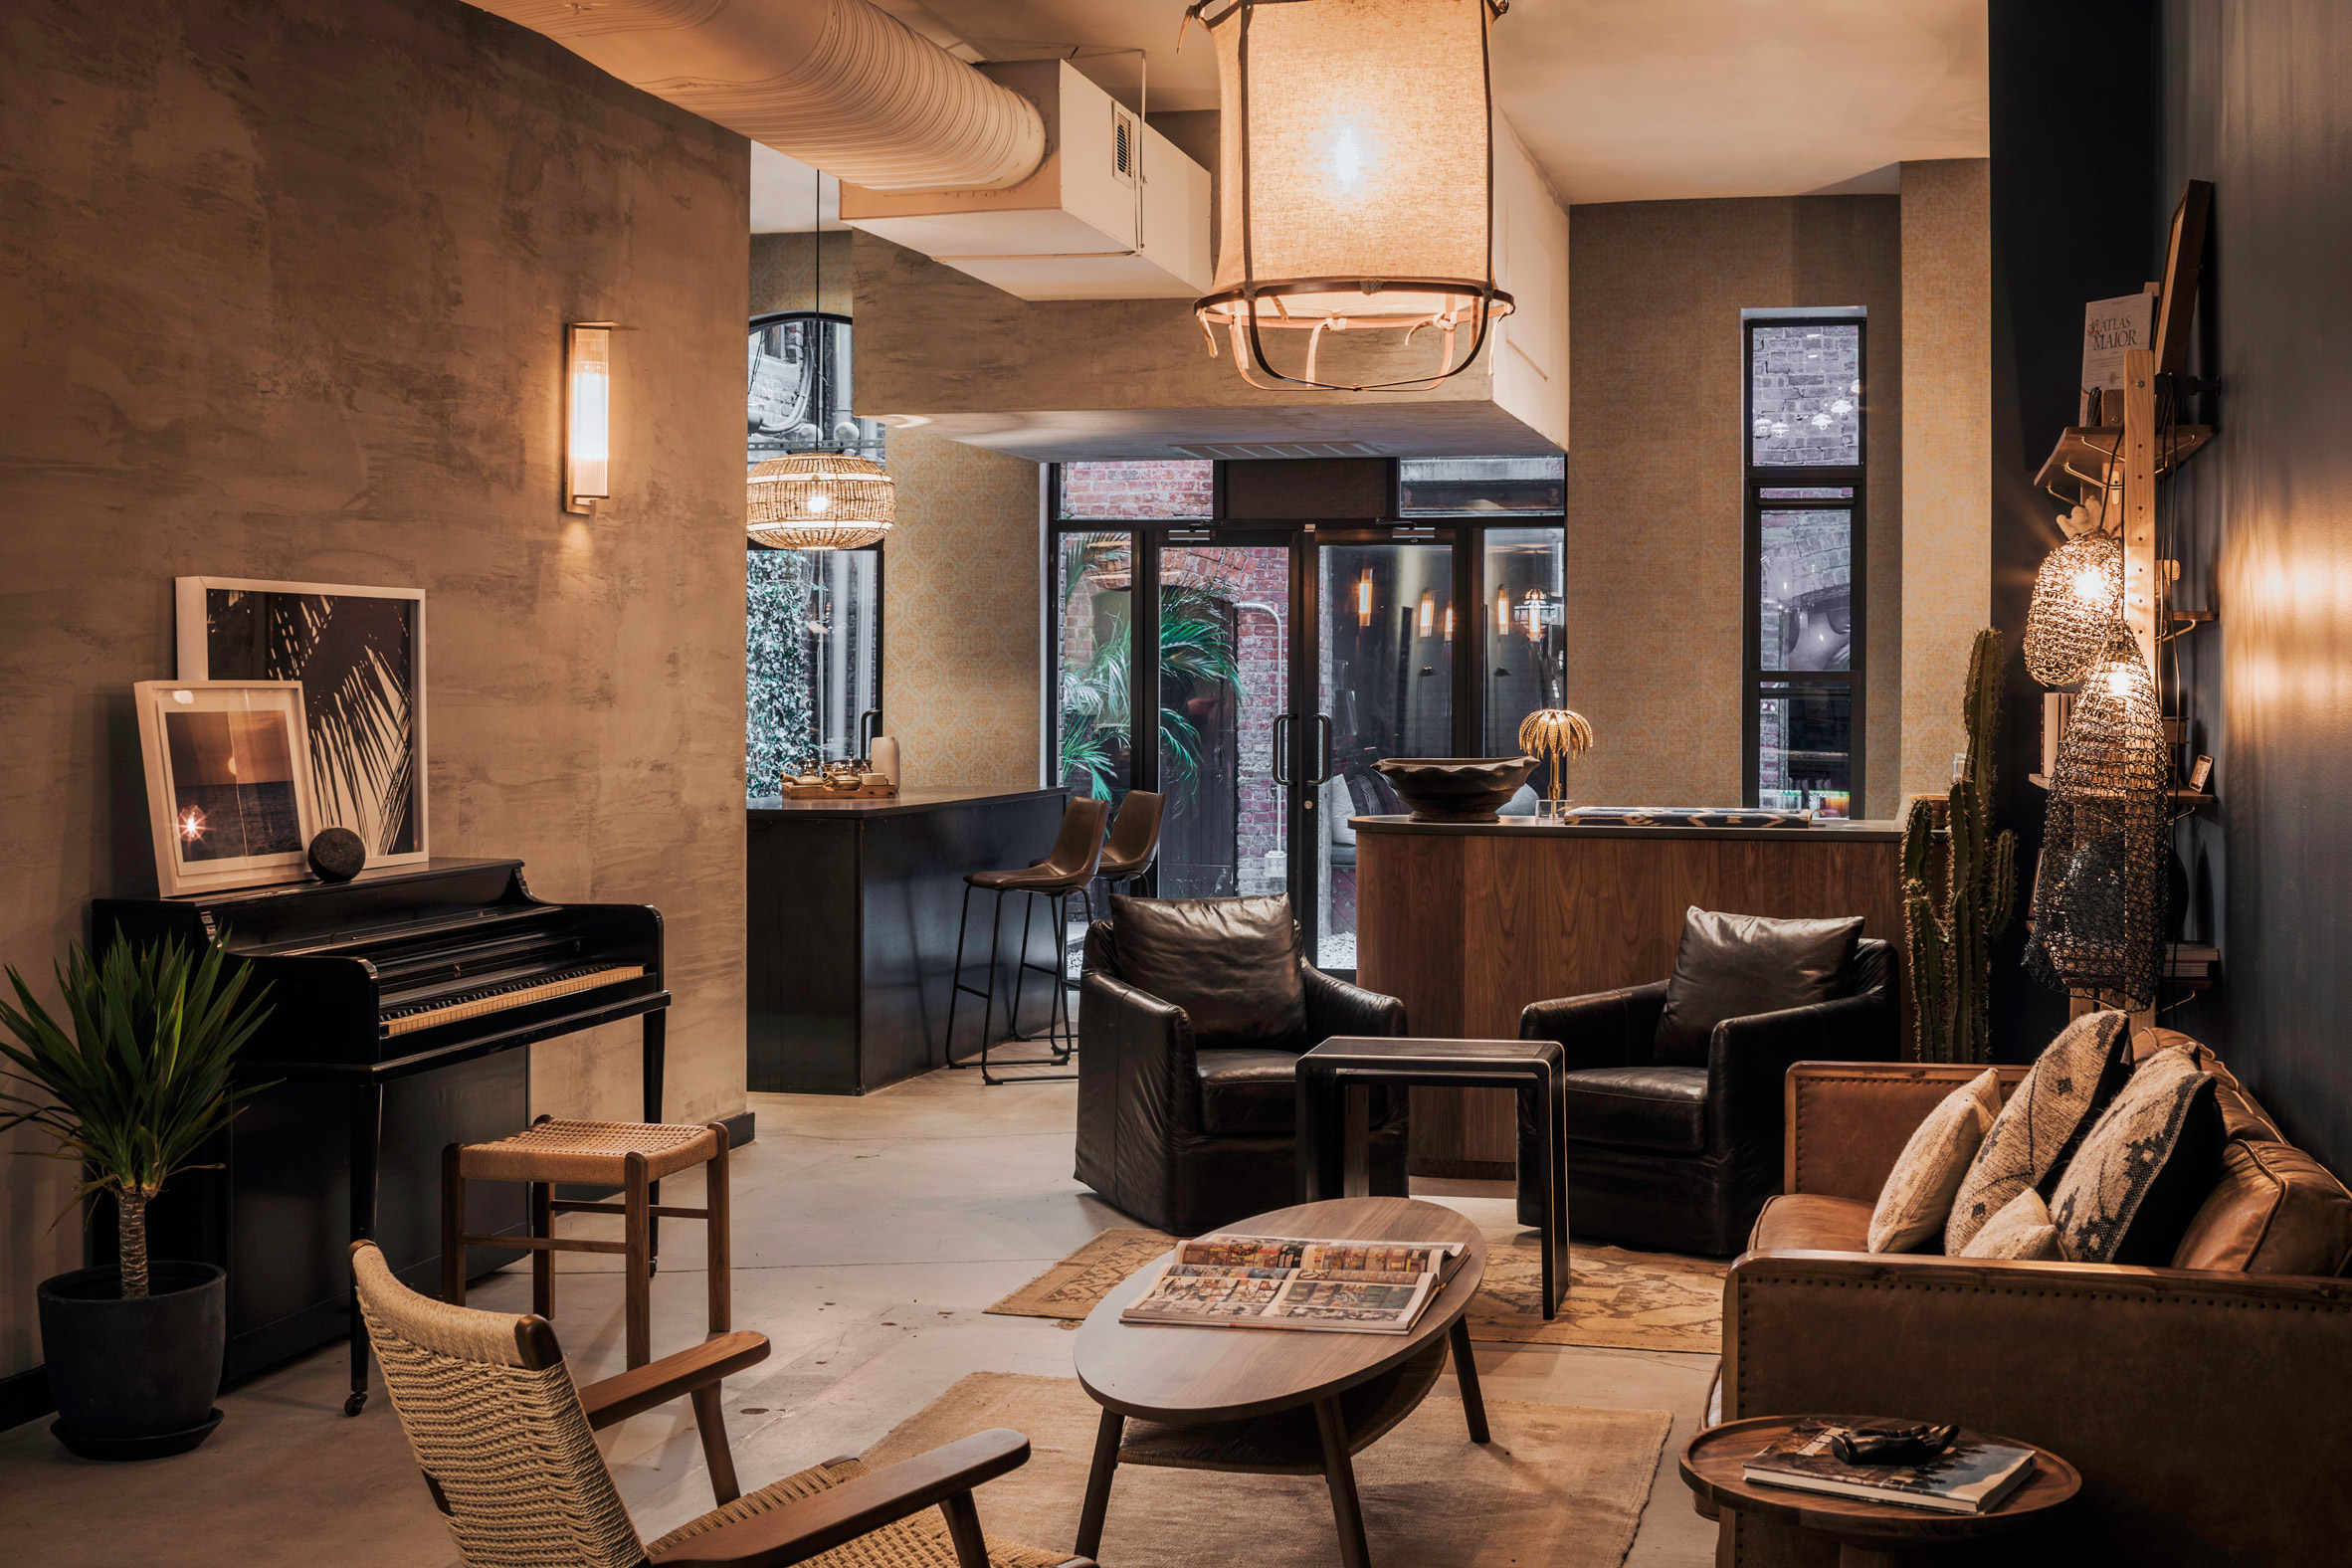 Habitas New York City members clubhouse by Style Mood